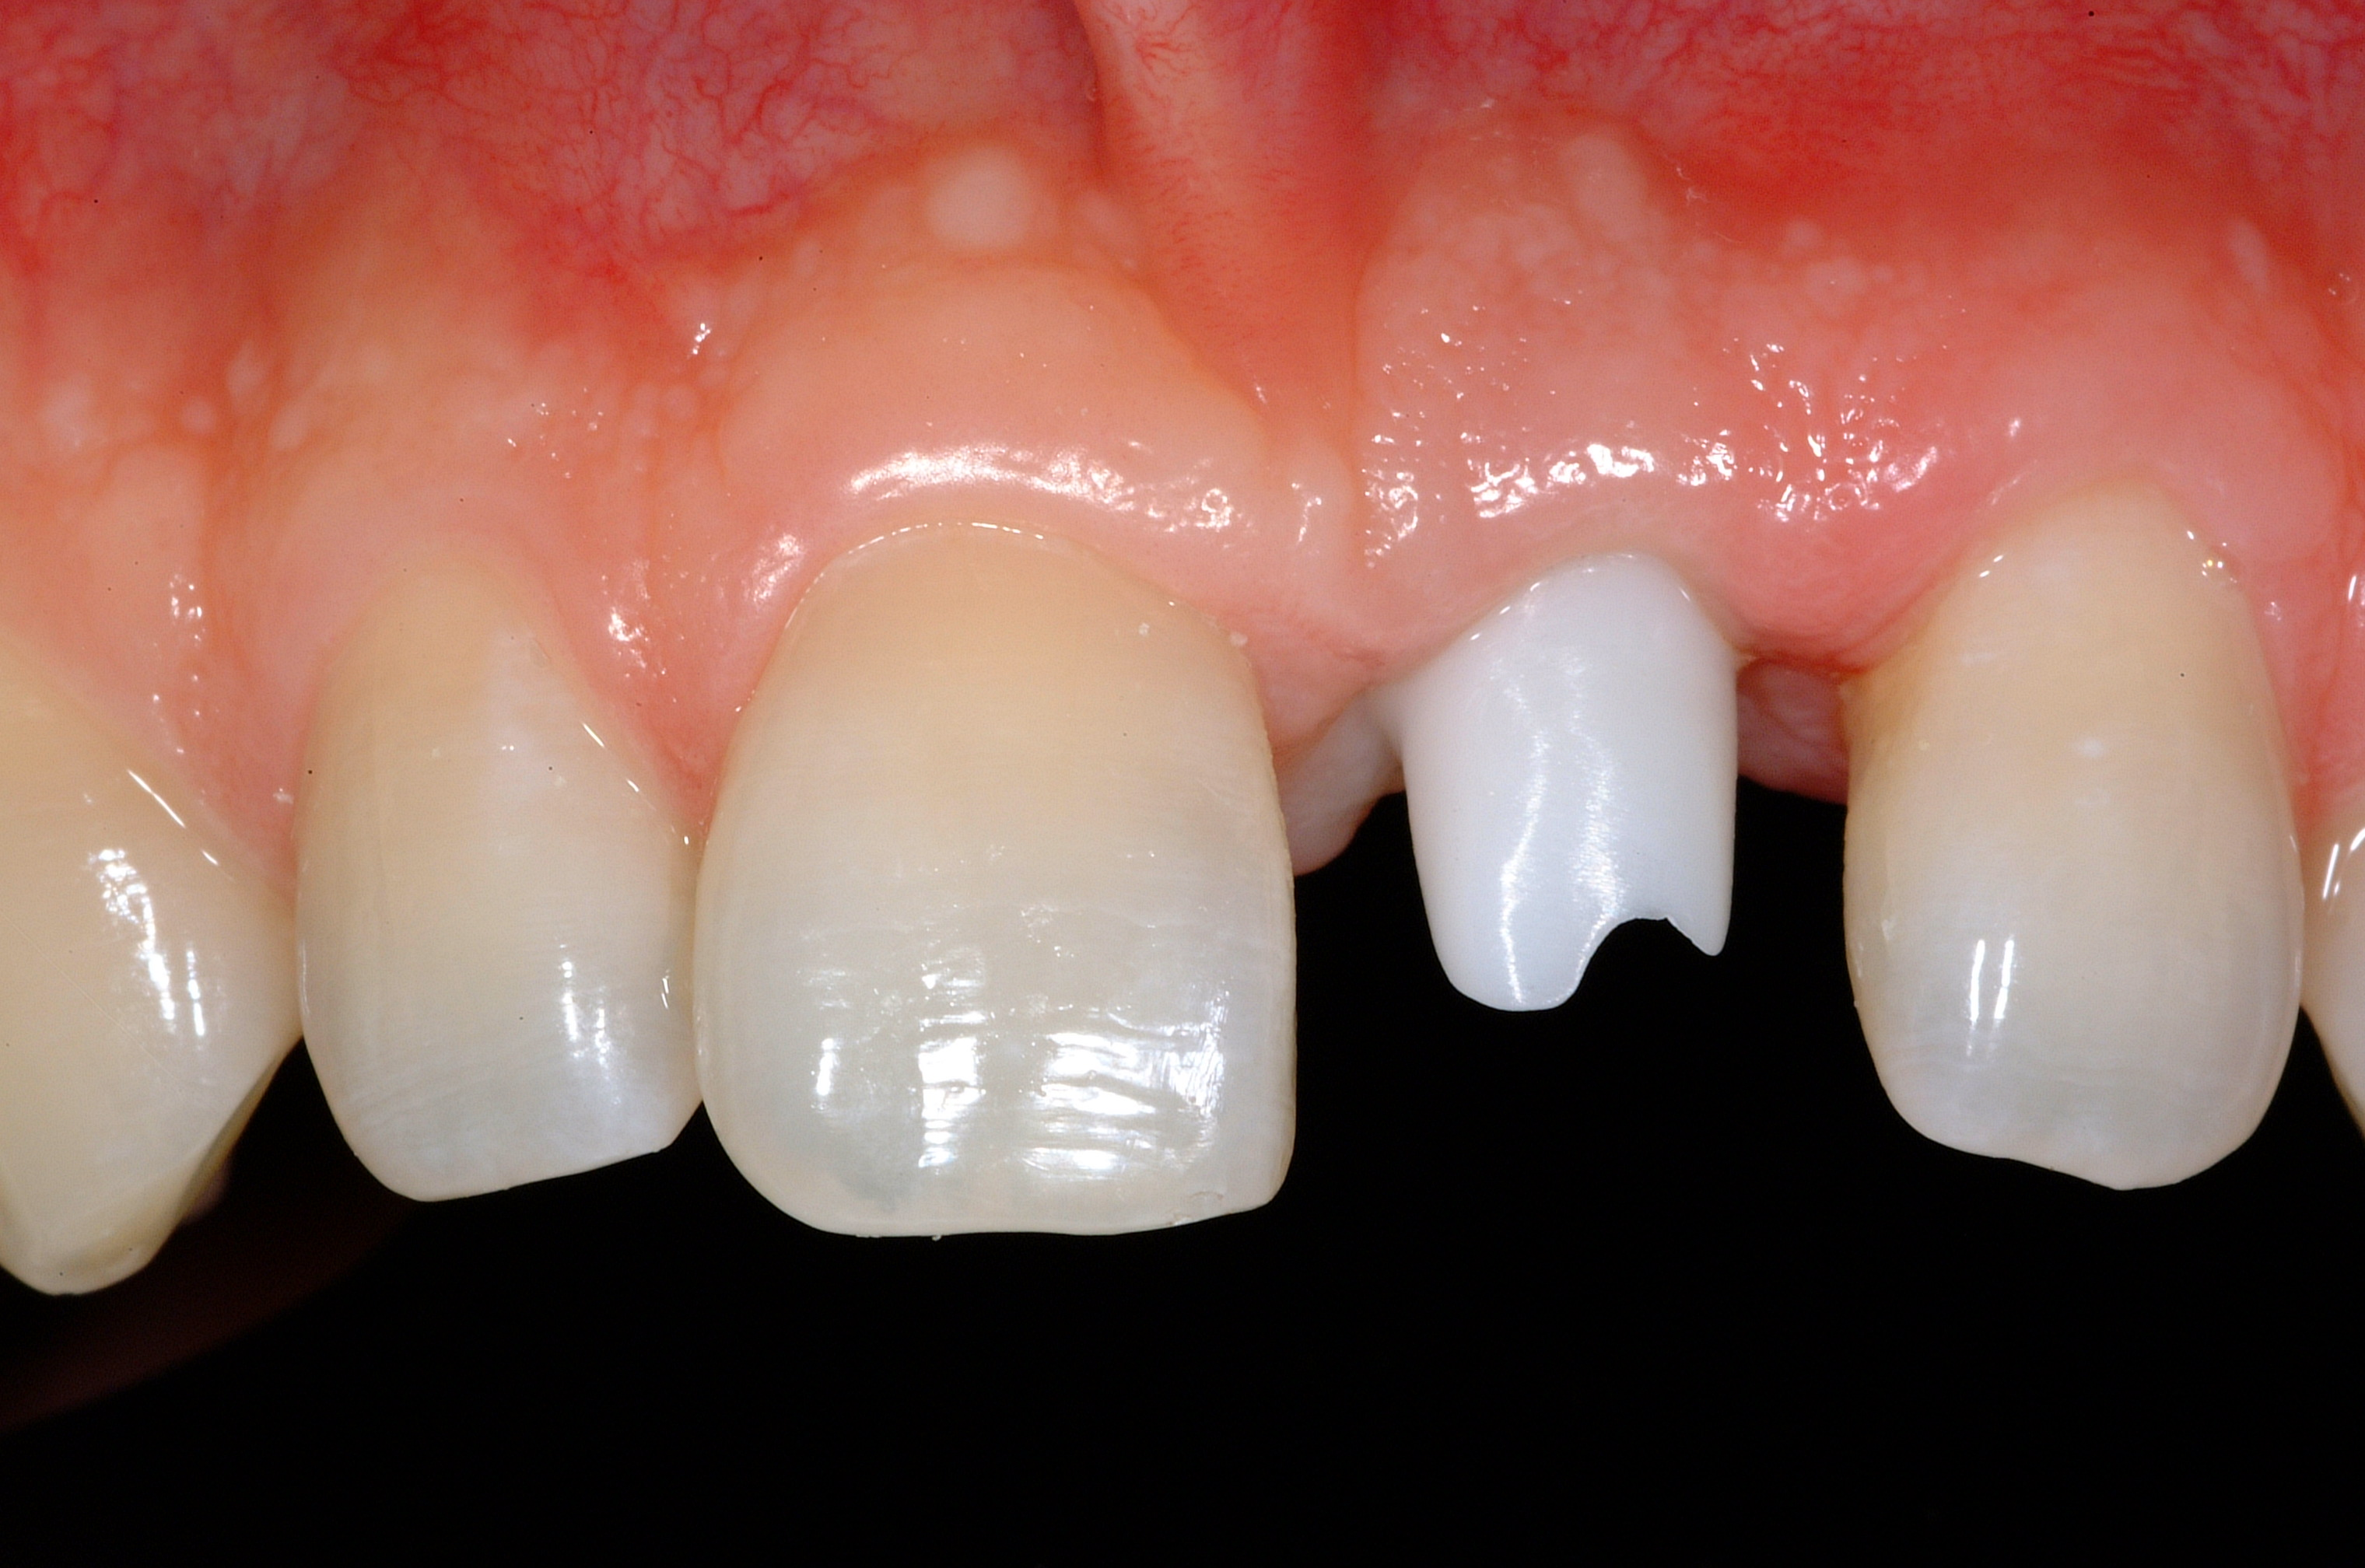 Before Single Tooth Replacement by Dental Implant